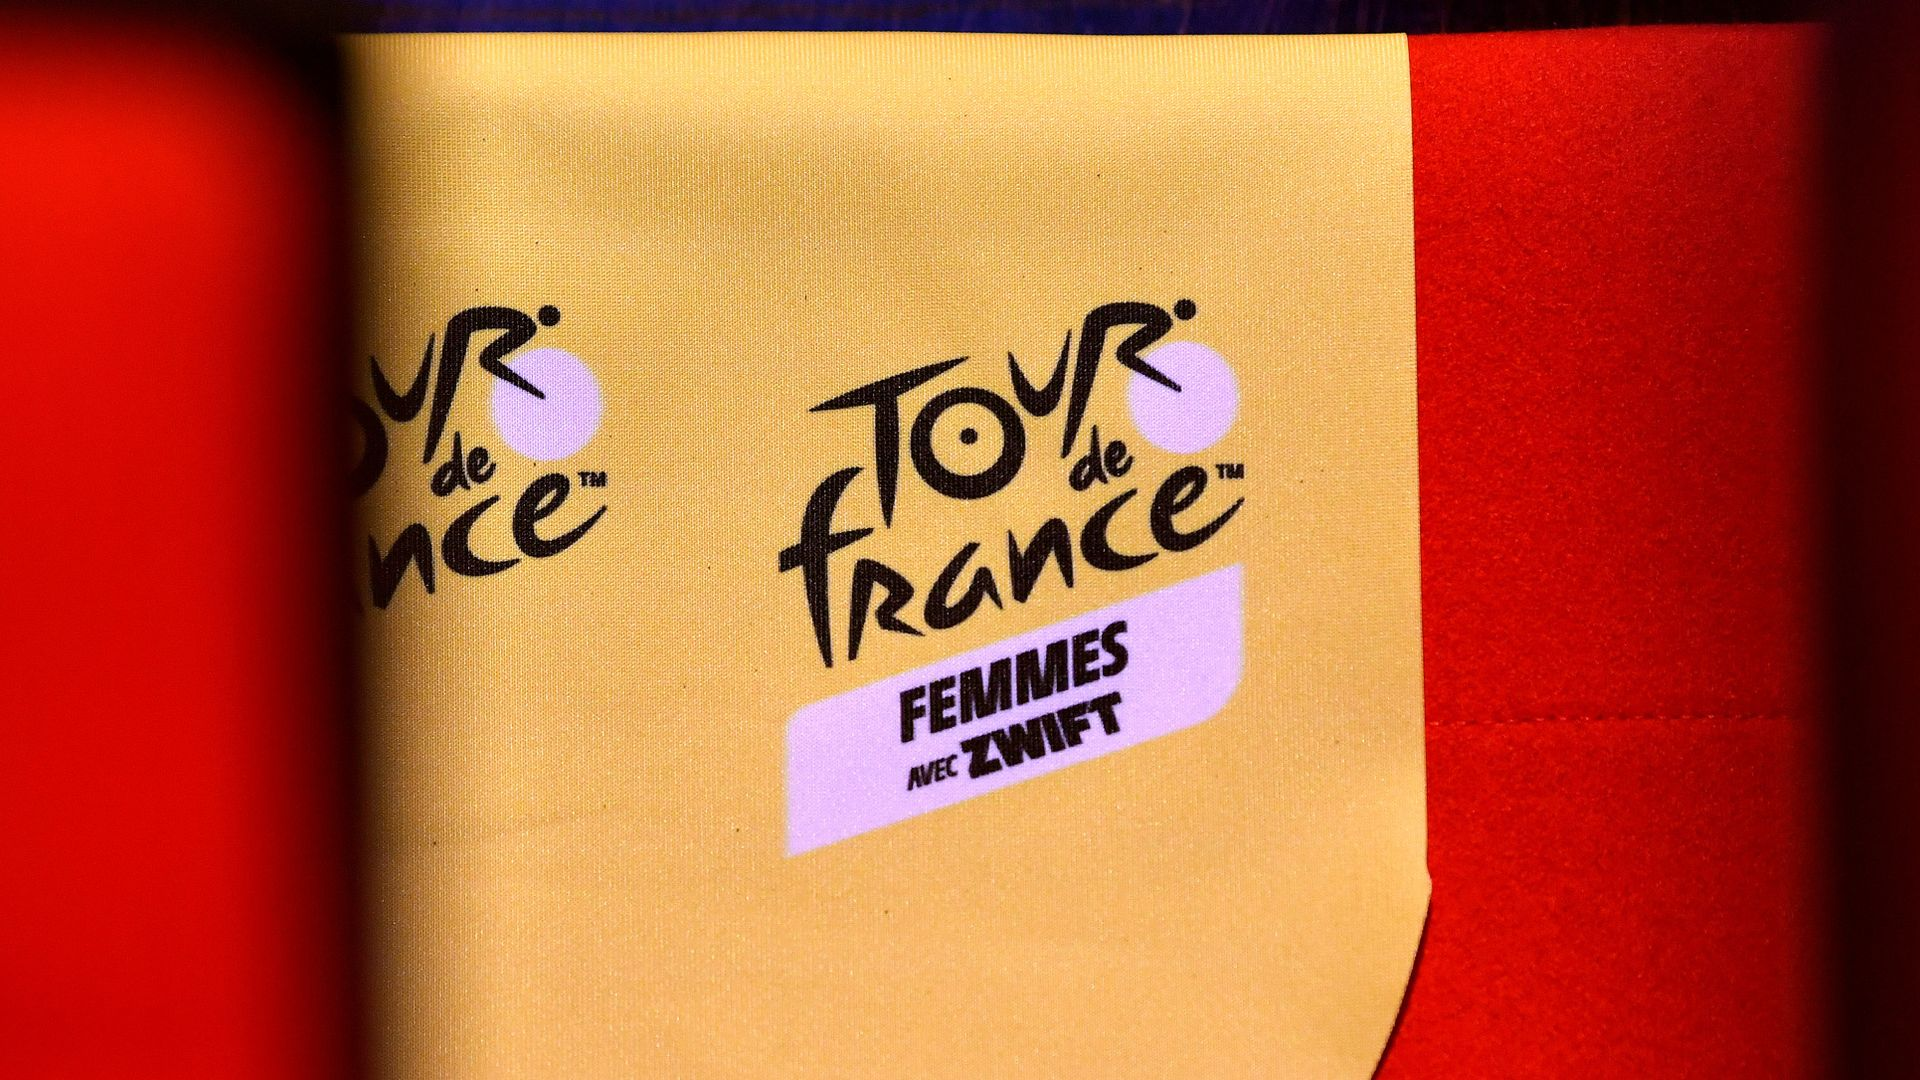 Women's Tour de France to return for first time in 33 years